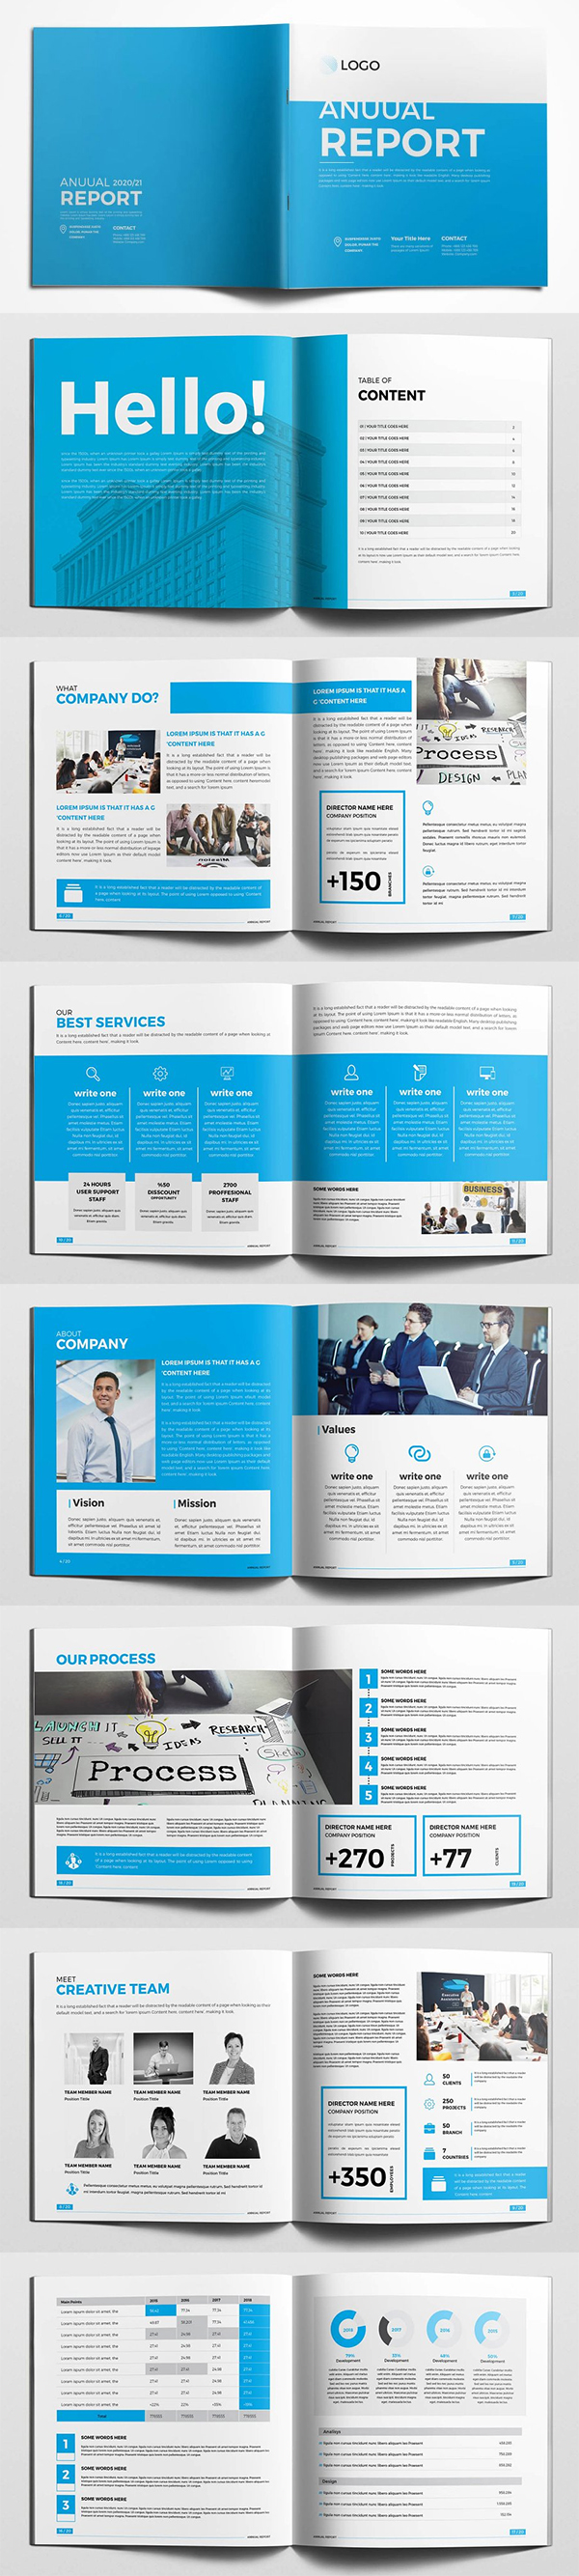 Square Annual Report Brochure